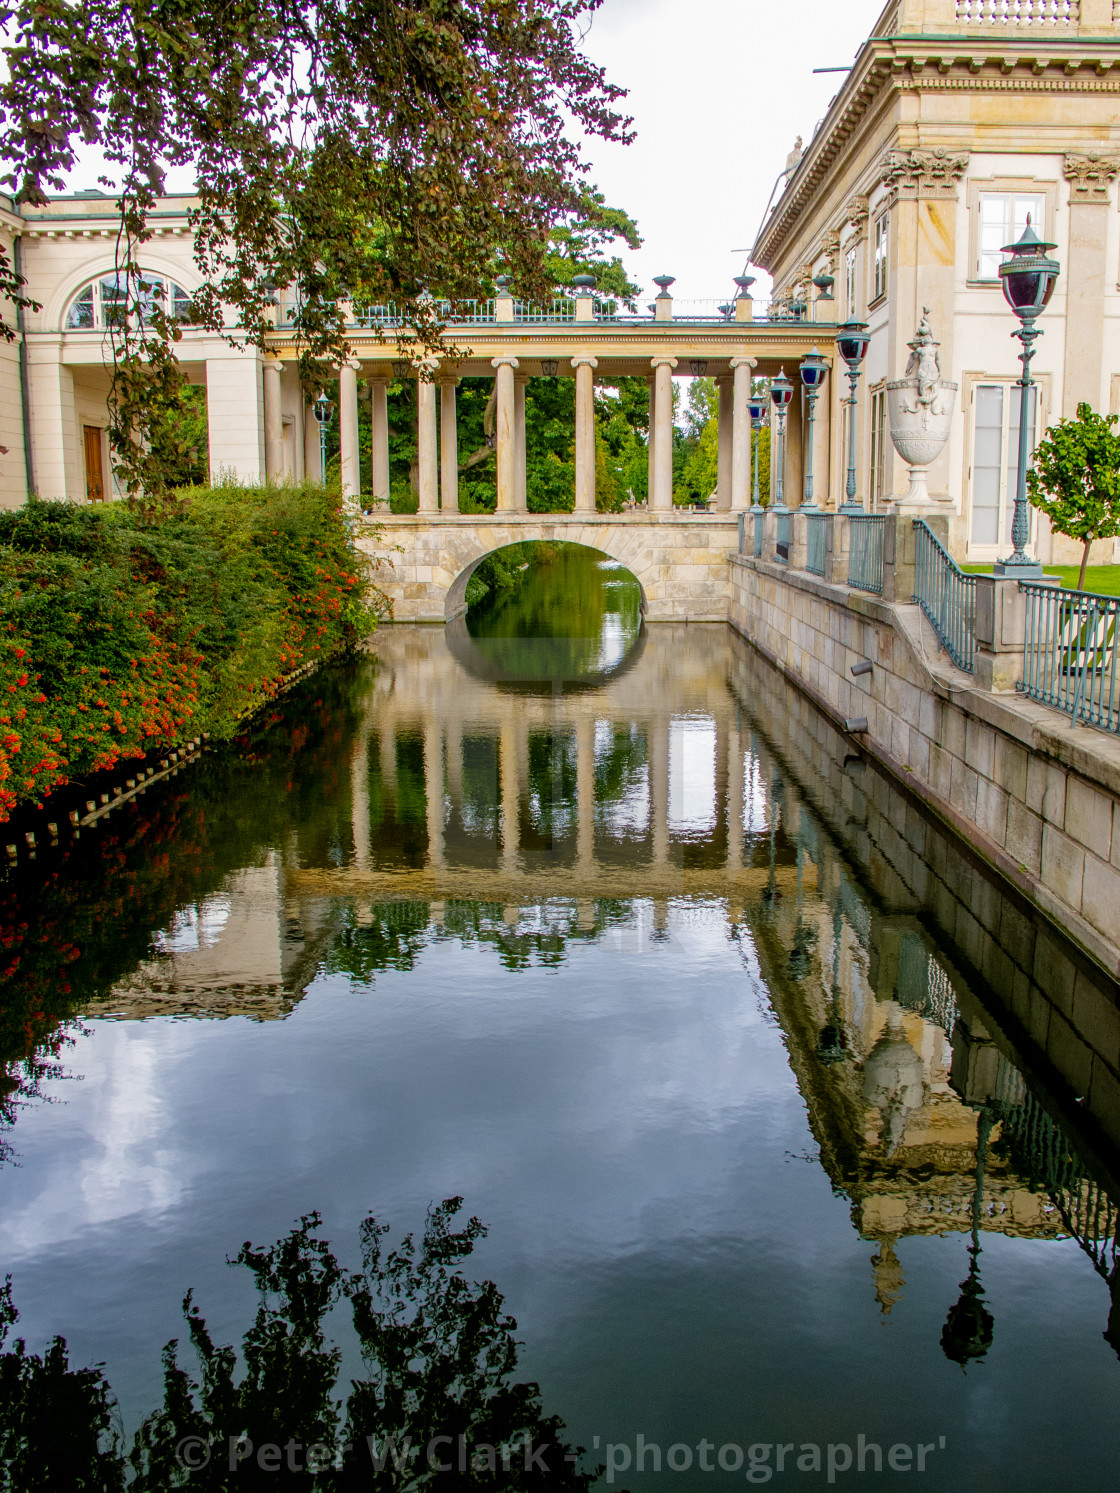 'Palace on the Isle', in Warsaw's Royal Baths Park, the city's largest park.